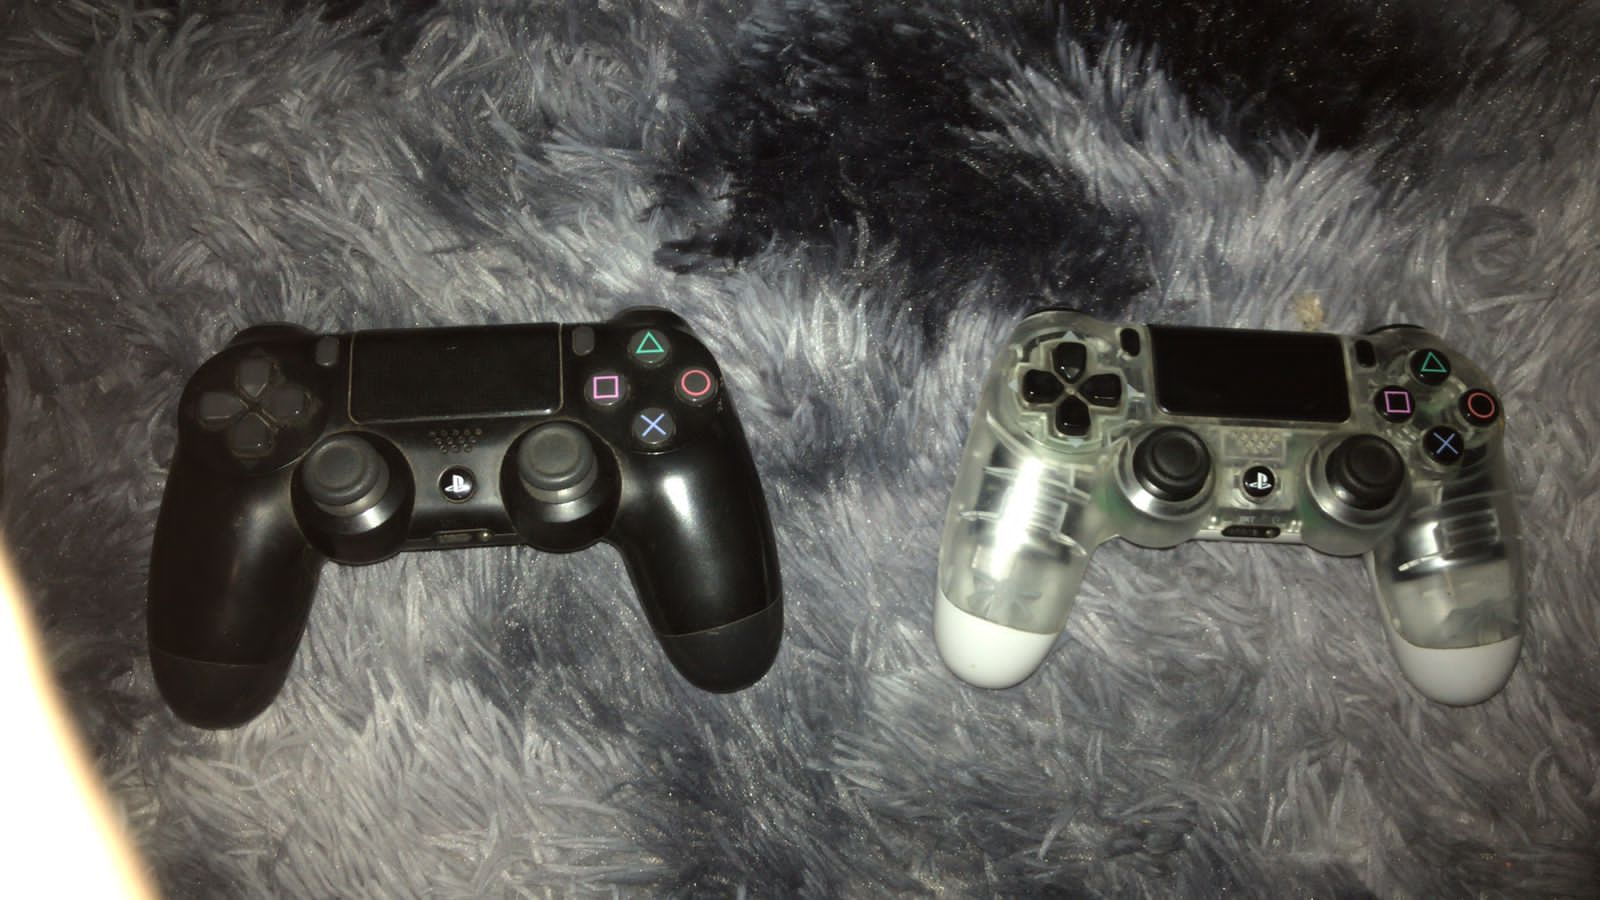 PlayStation 4 Original 500gb with 2 controllers and 2 games